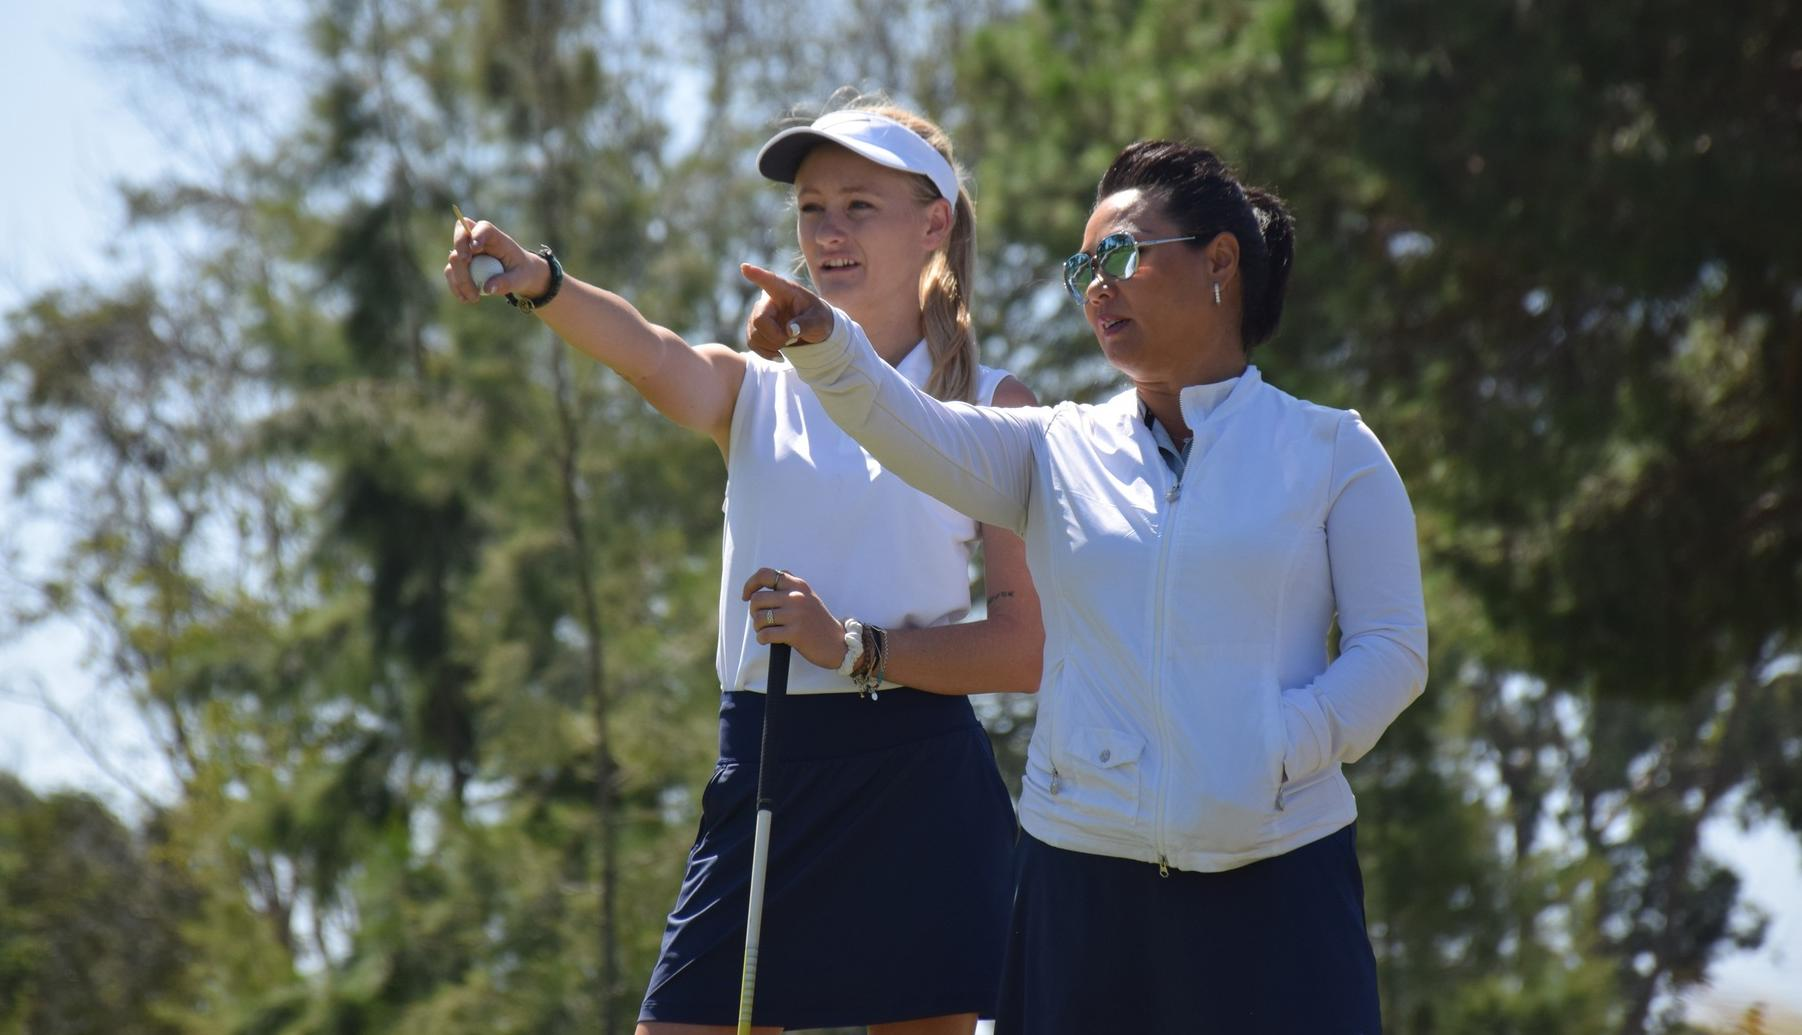 Women's golf team hosts conference match at Tustin Ranch